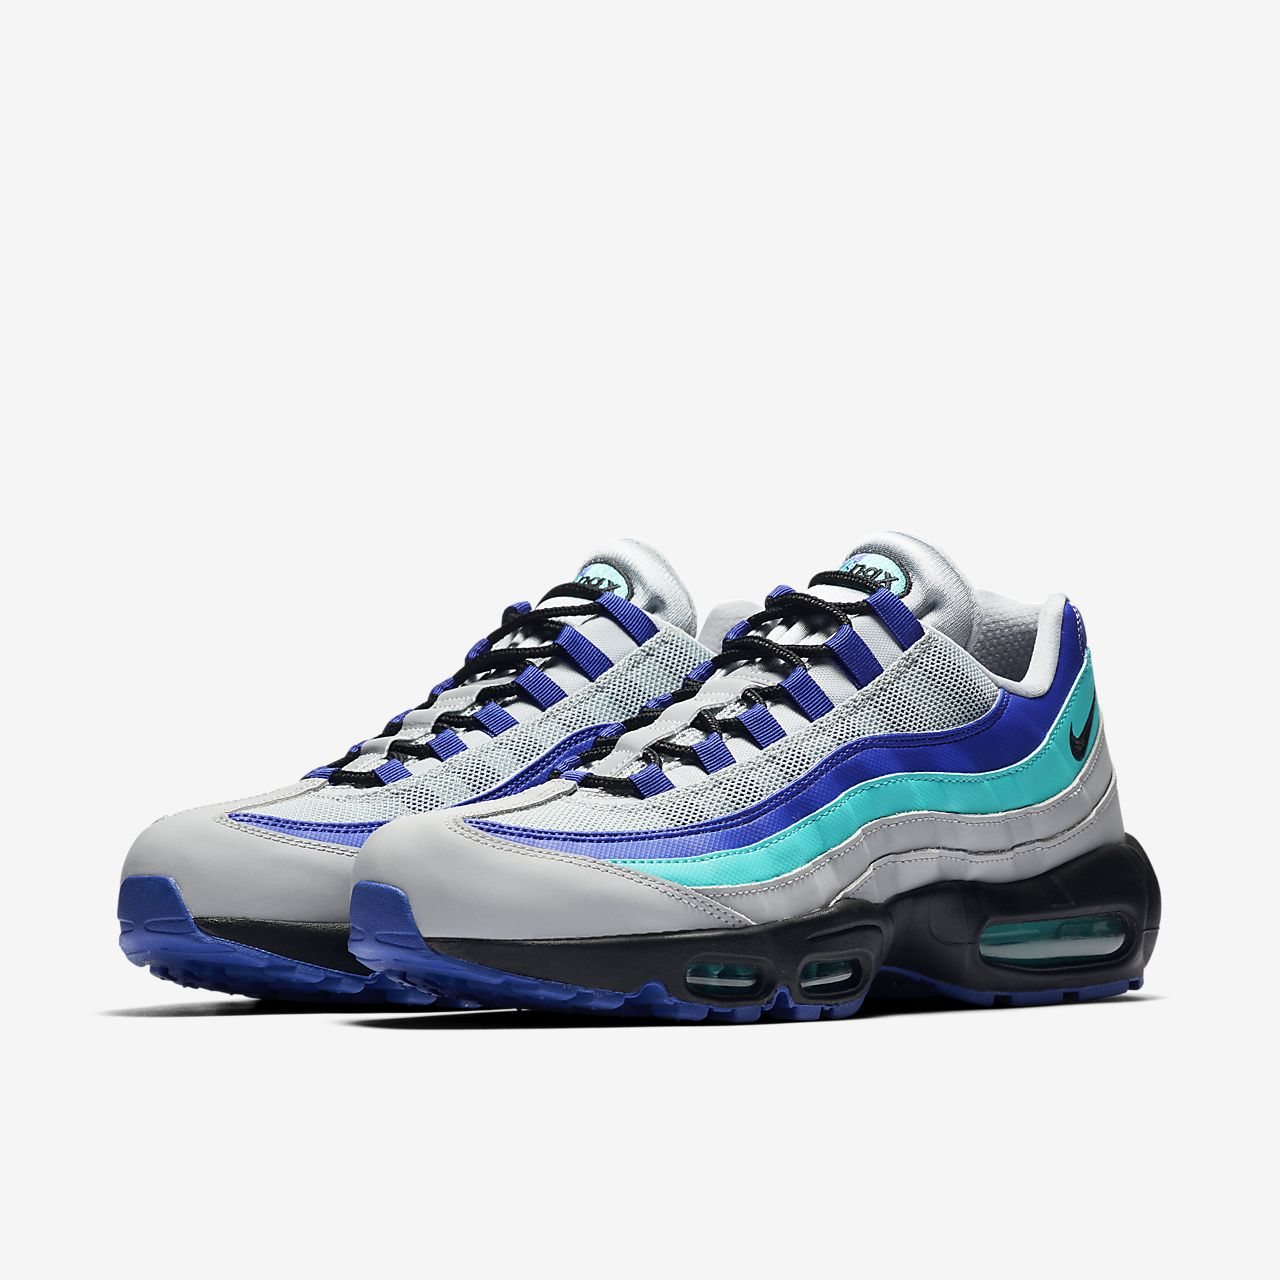 watch 7c363 50b08 ... Nike Air Max 95 OG Shoe